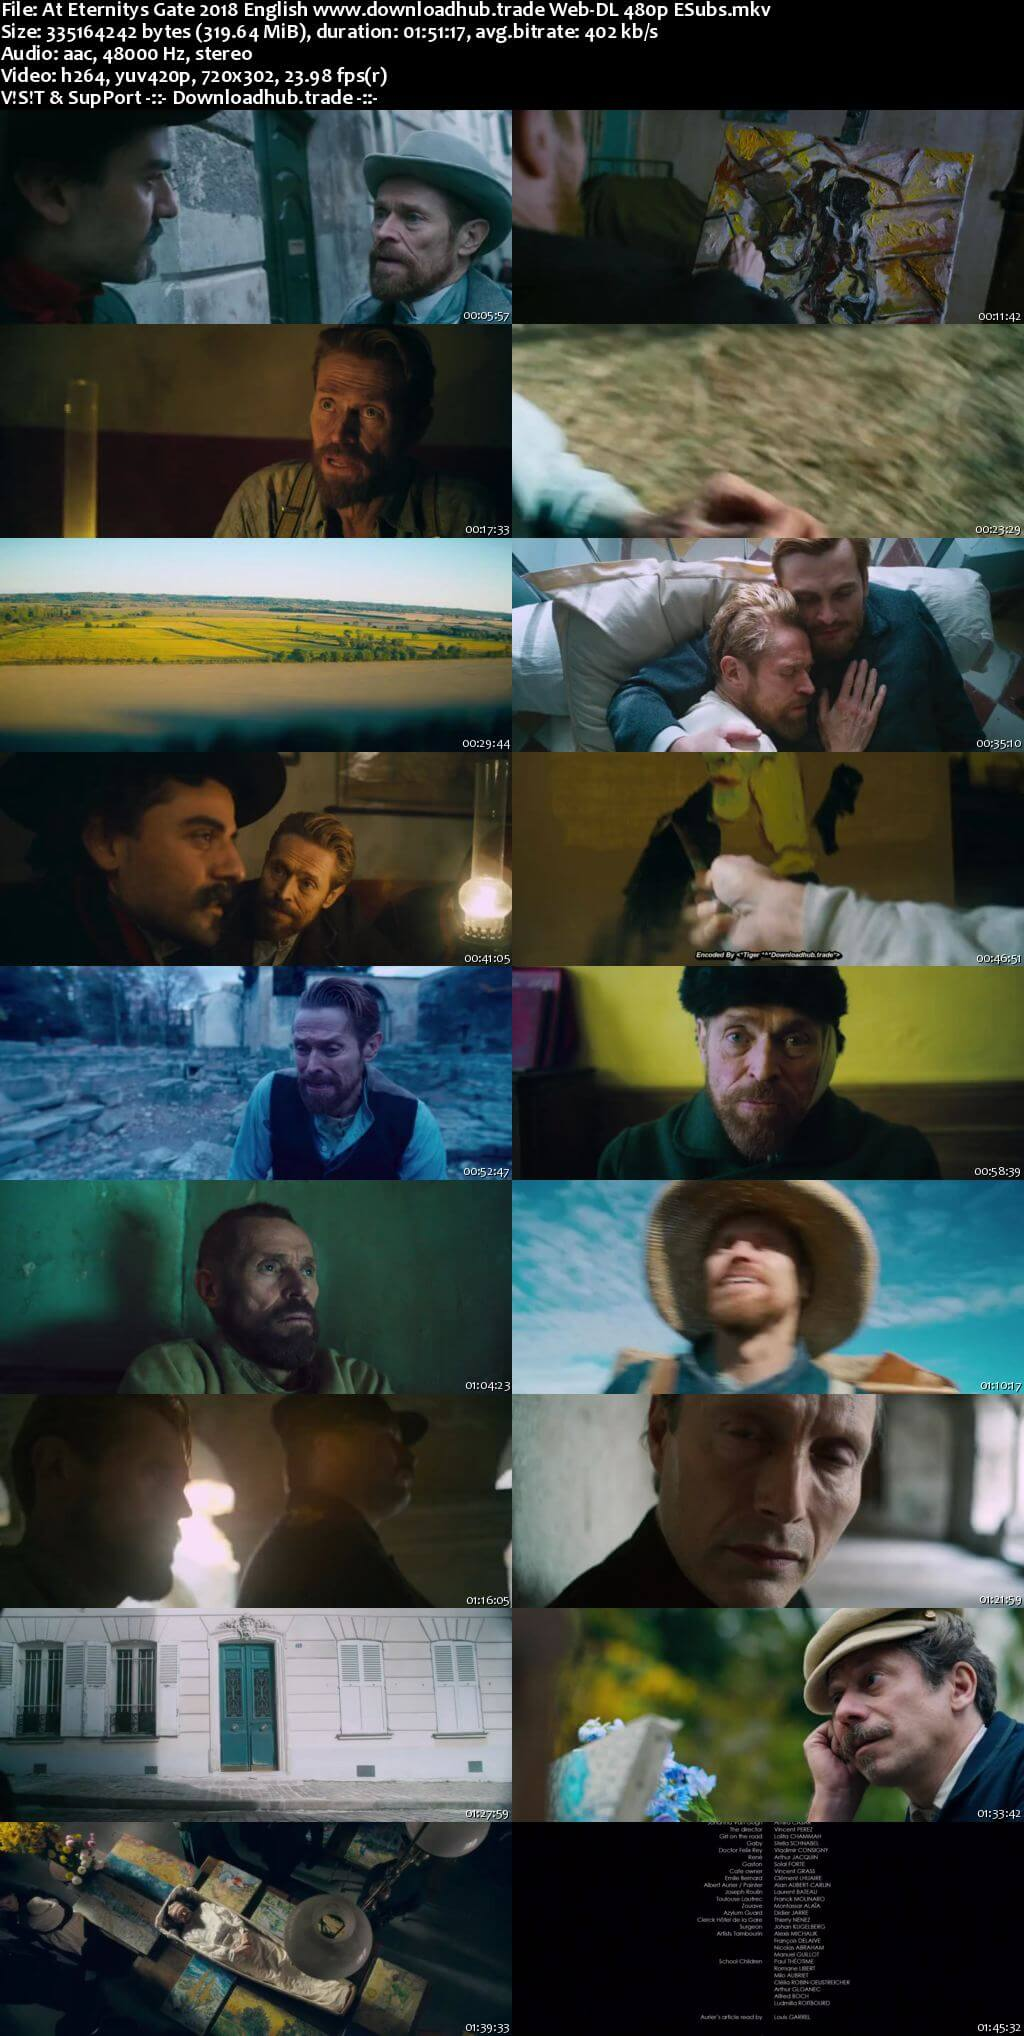 At Eternitys Gate 2018 English 300MB Web-DL 480p ESubs